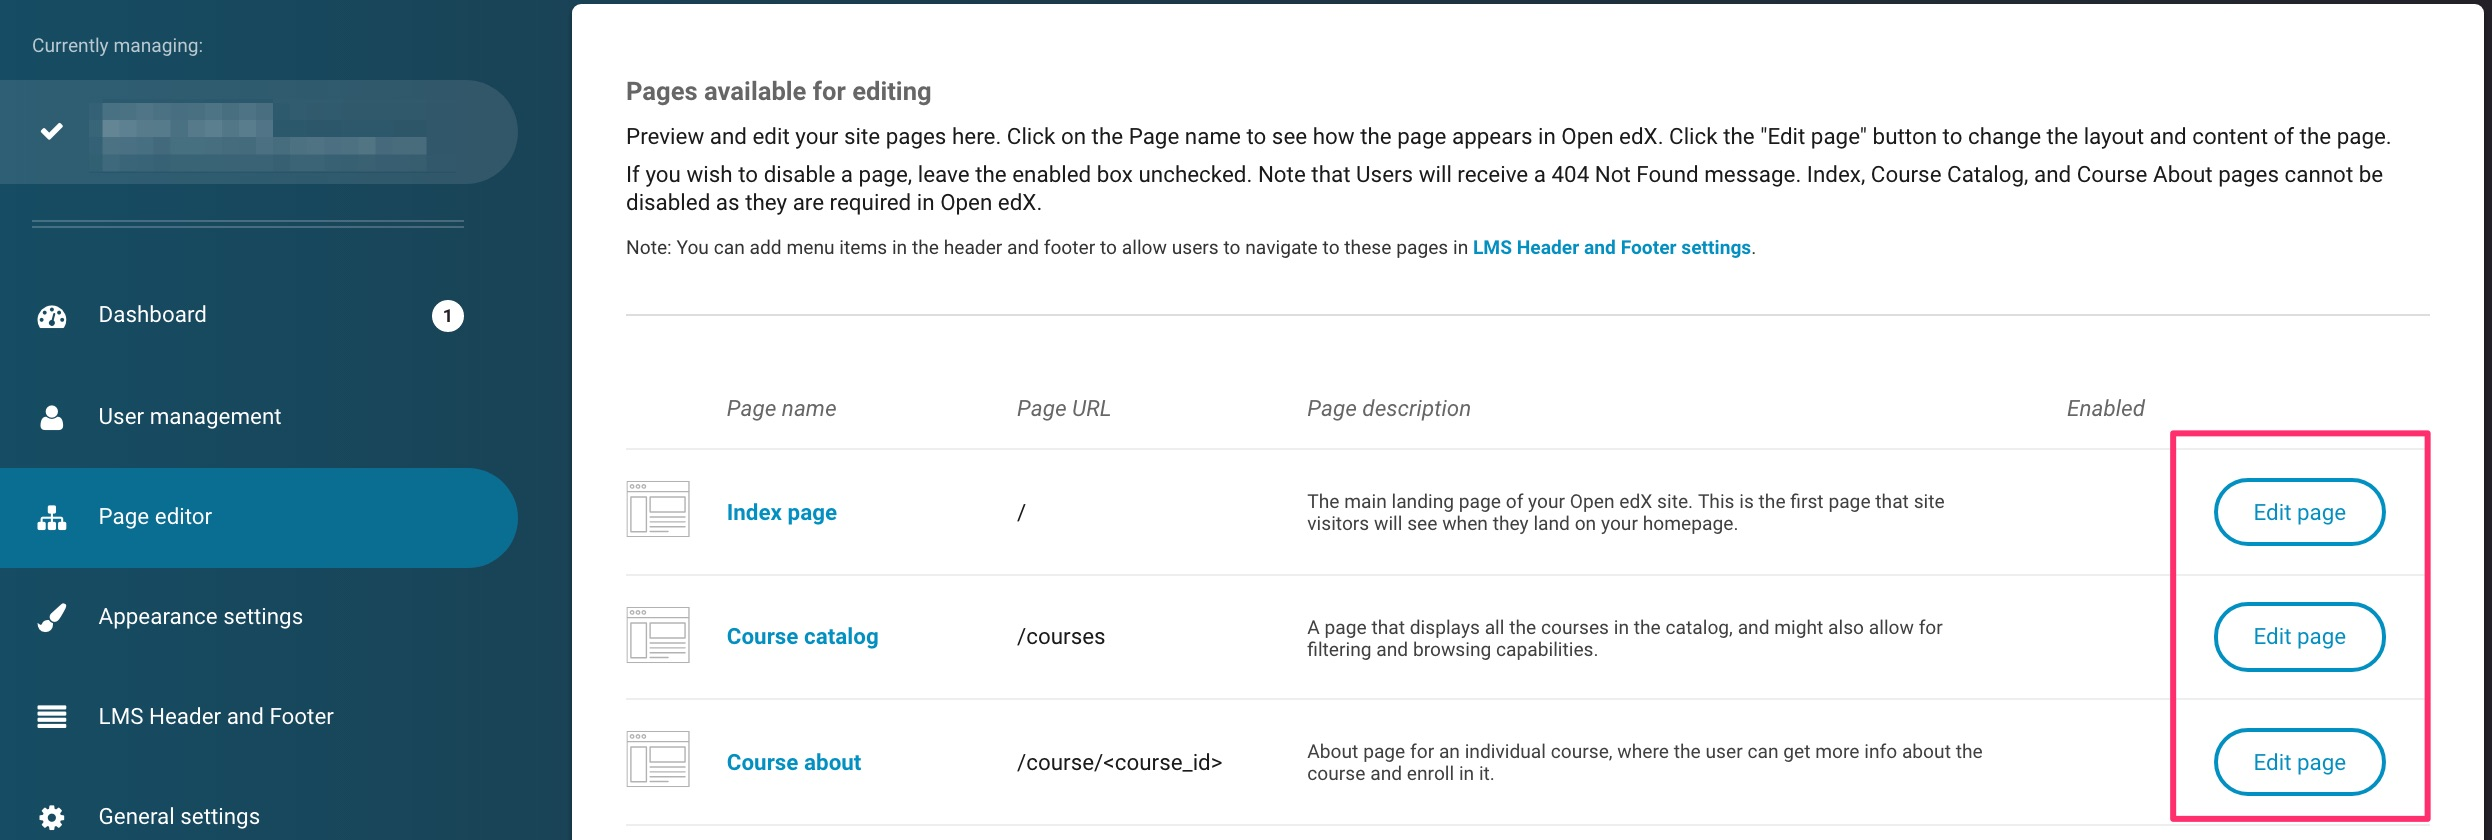 page editor hub with three edit page buttons highlighted on the right